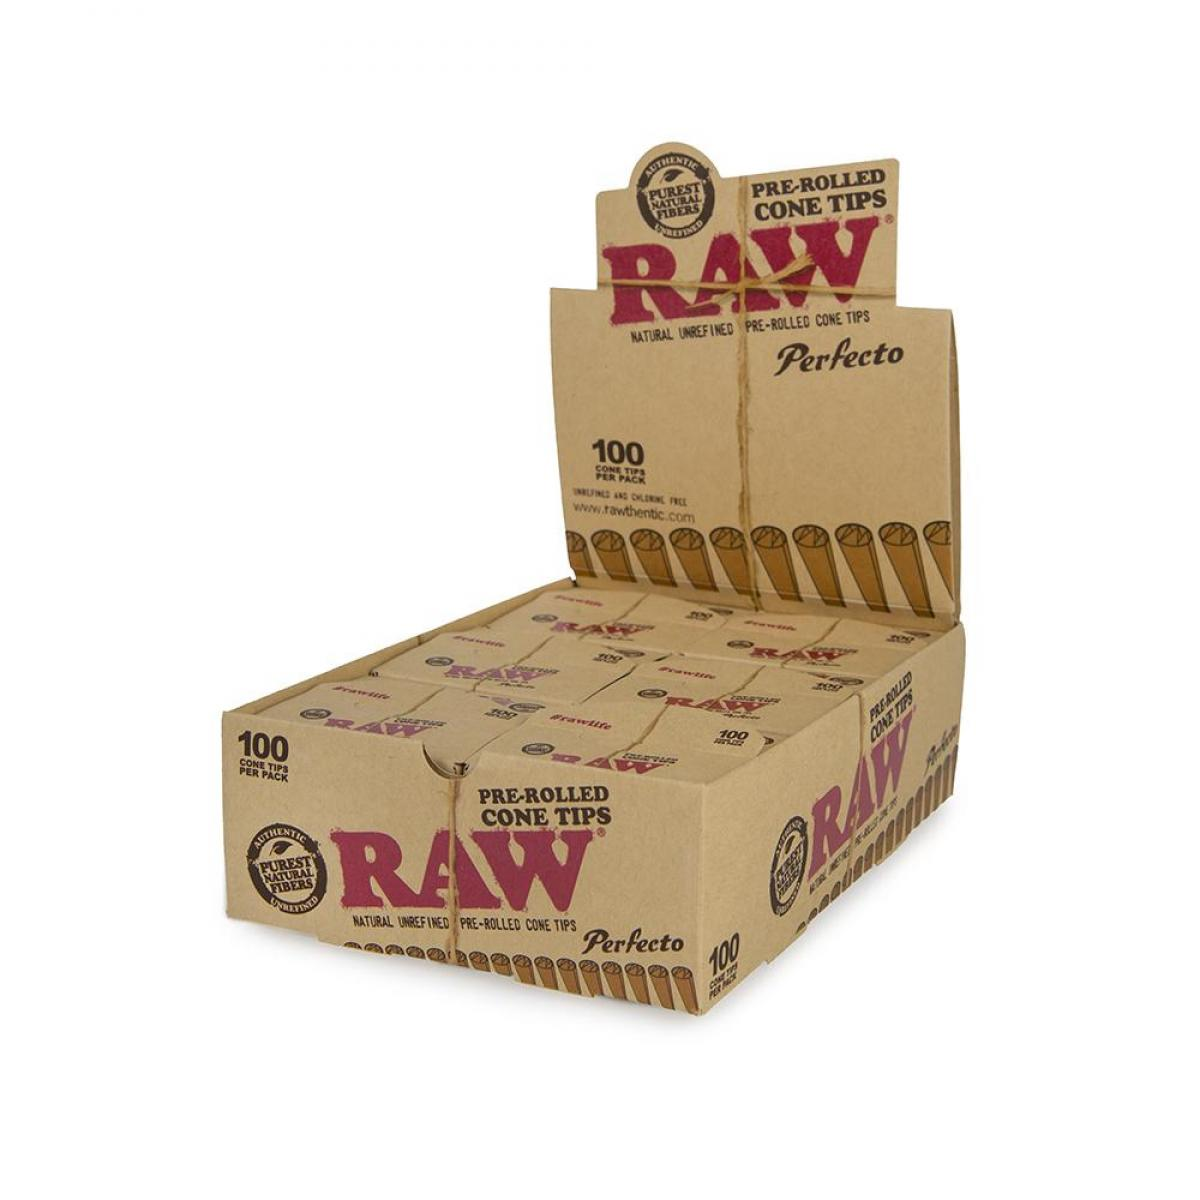 Raw Perfecto Pre-Rolled Cone Tips - 100ct